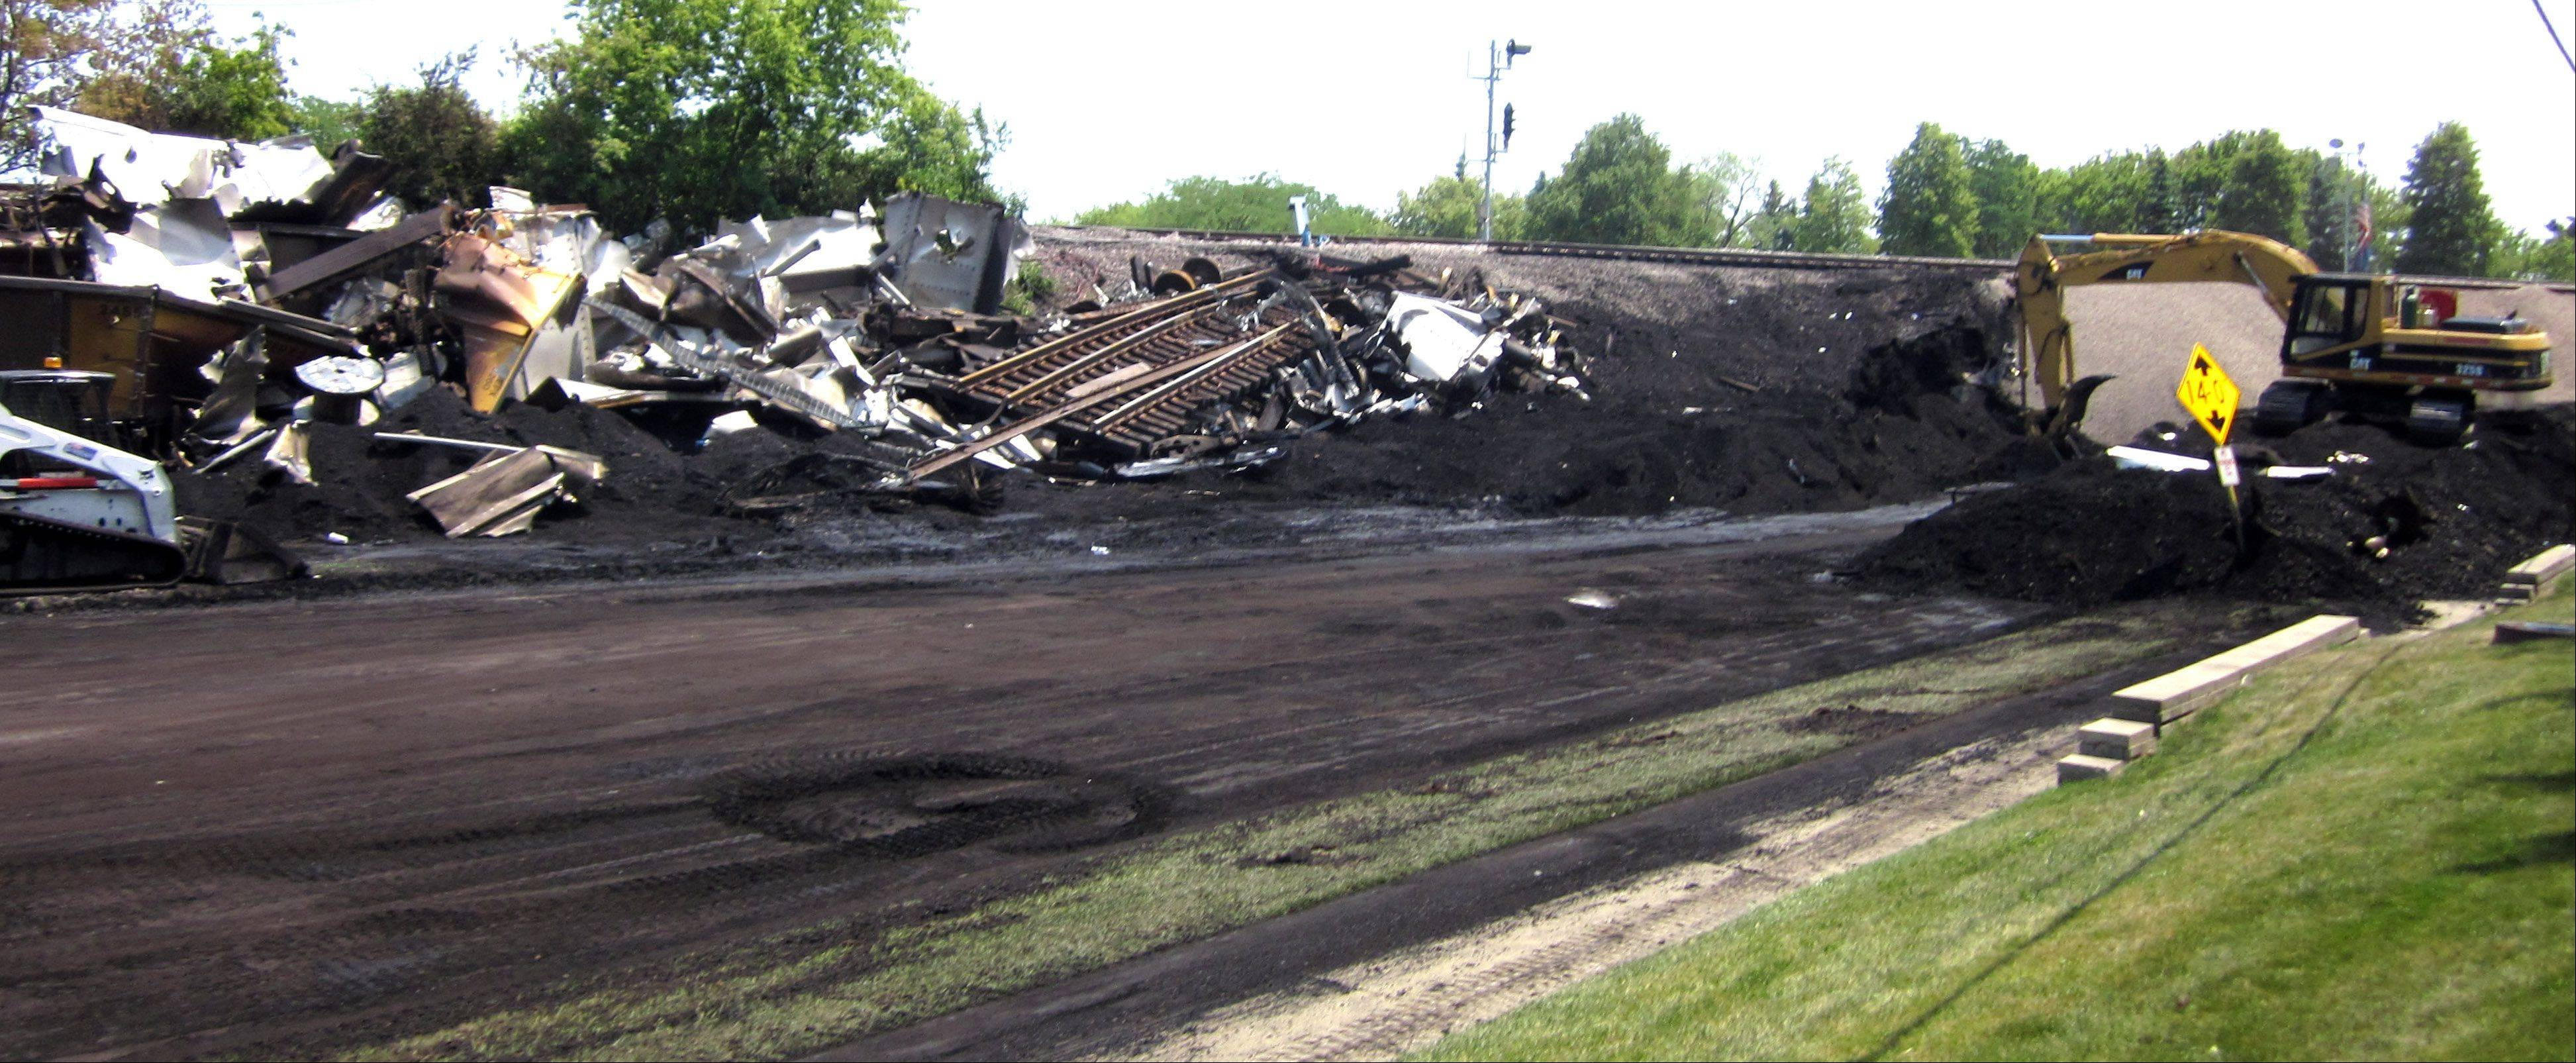 Machinery is at the scene two days after a fatal train derailment near Glenview.